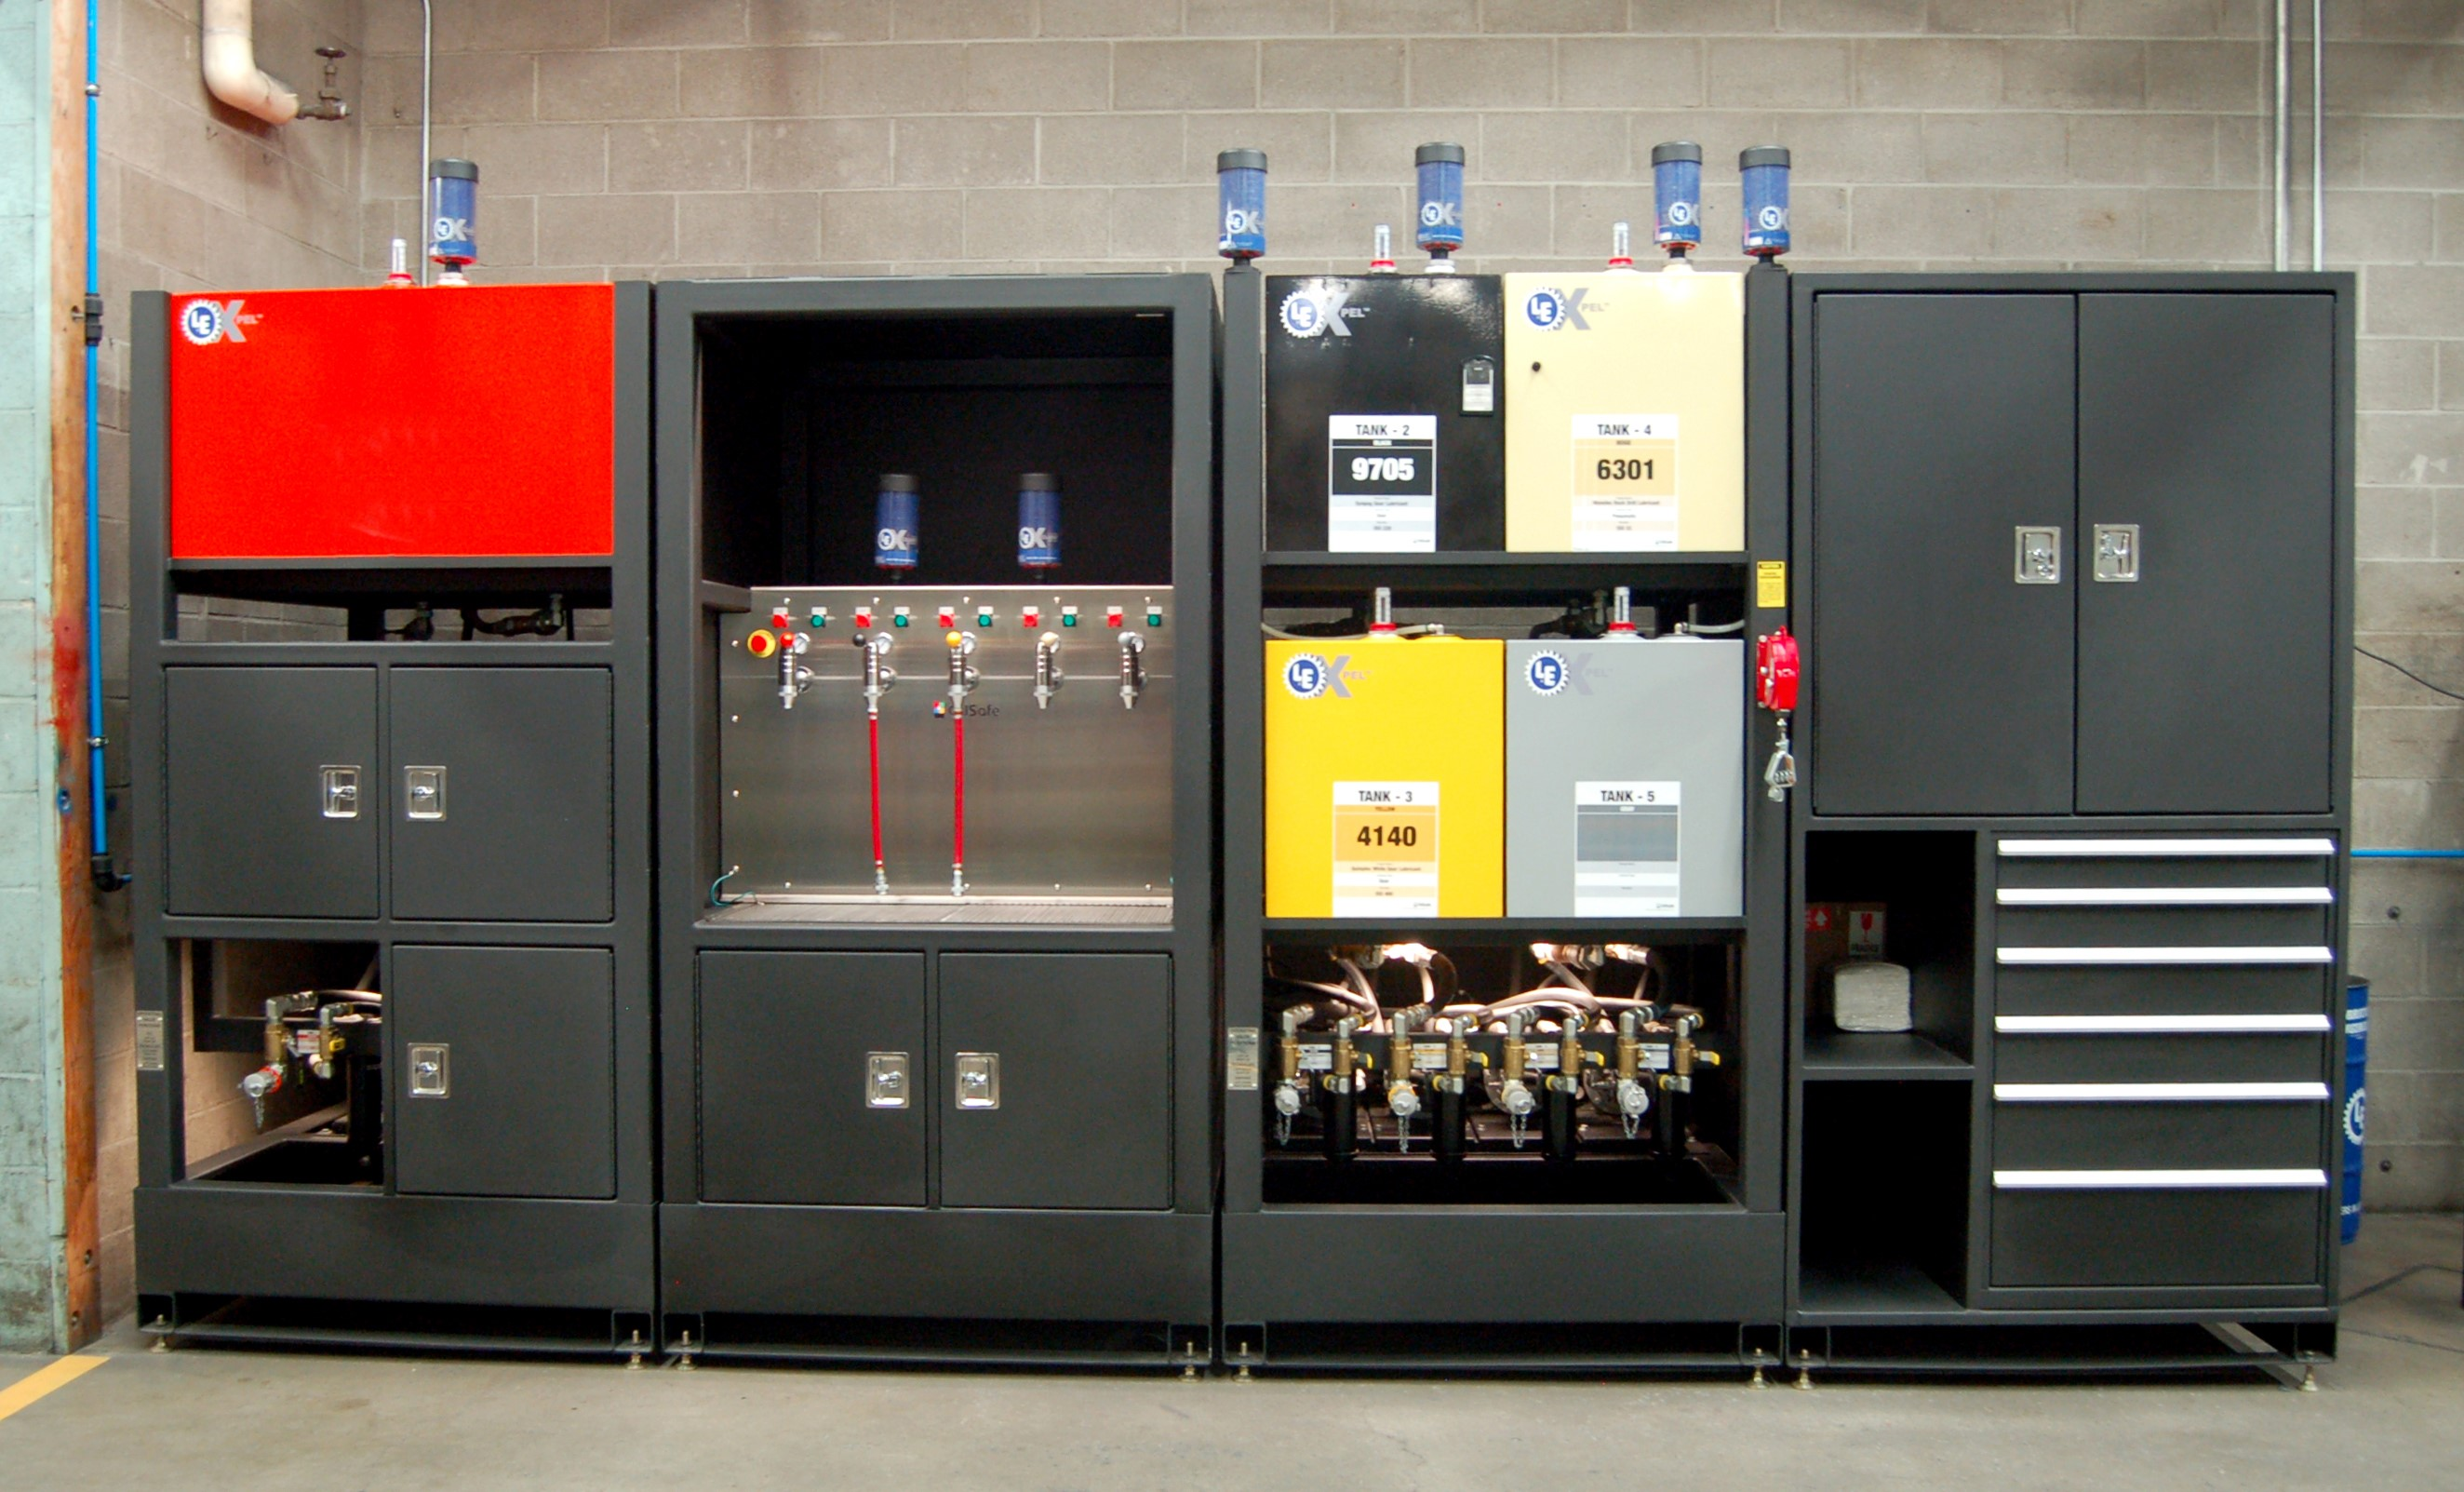 Fixing Lubrication Storage Can Help Avoid 90% Of Contamination